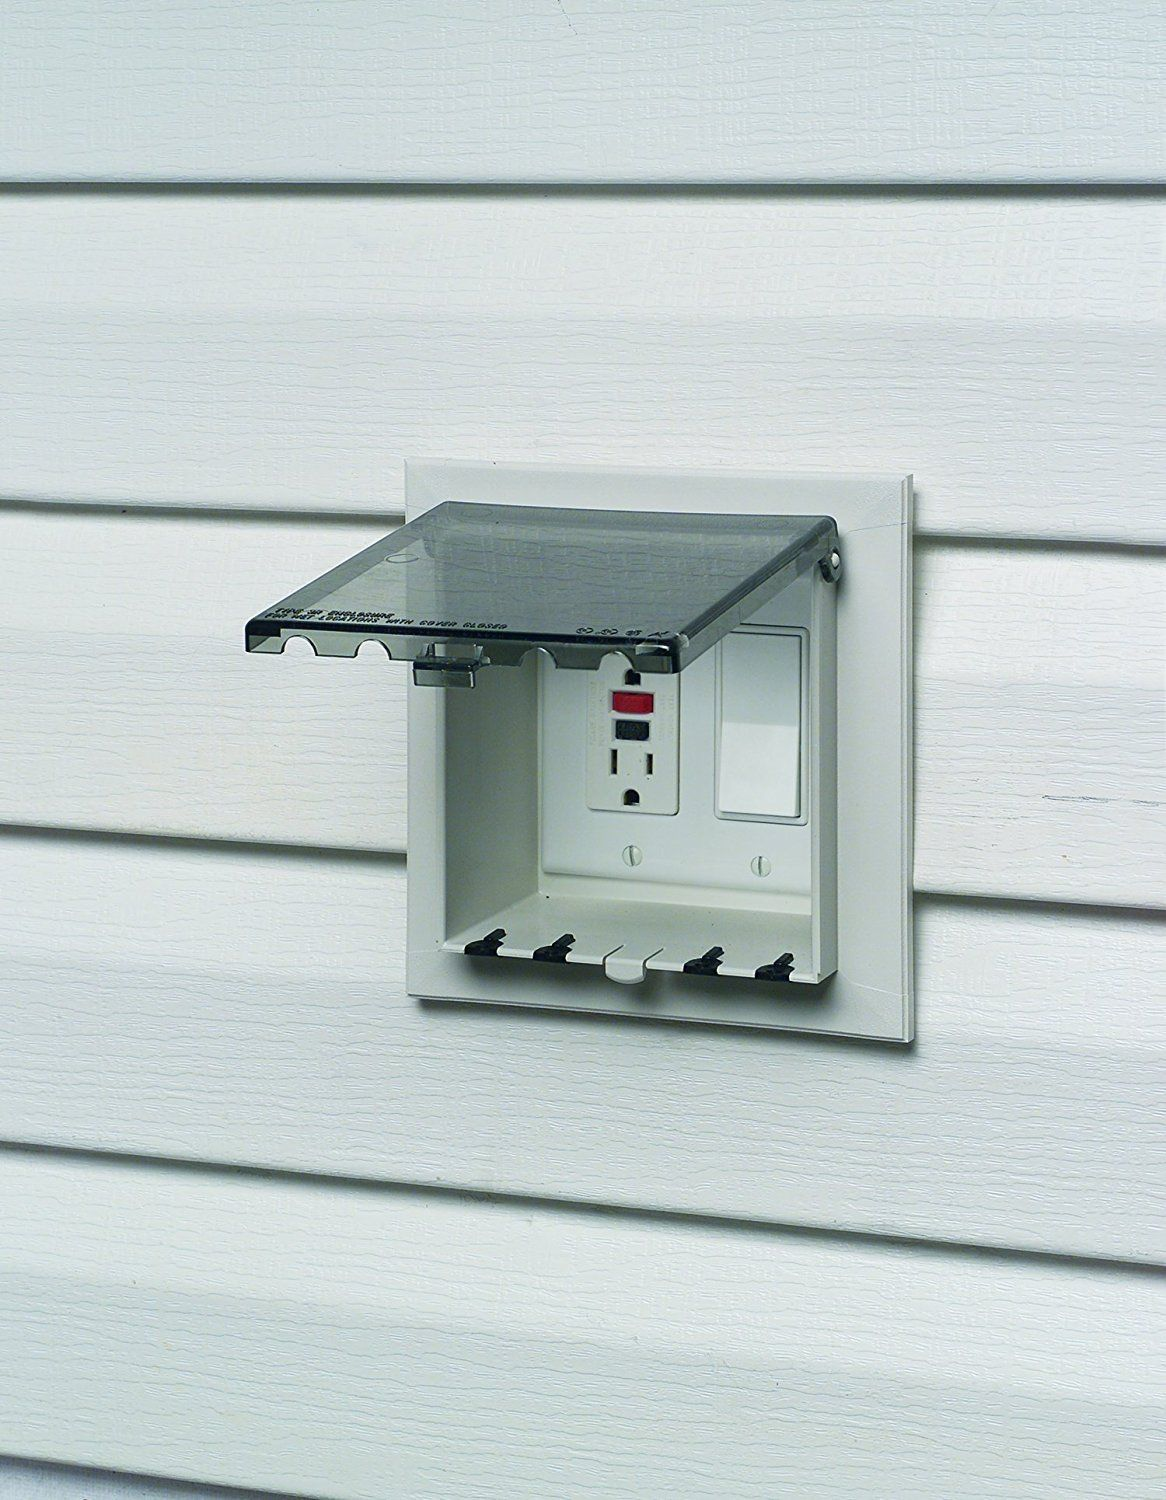 Arlington Dbvs2c 1 Outdoor Electrical Box With